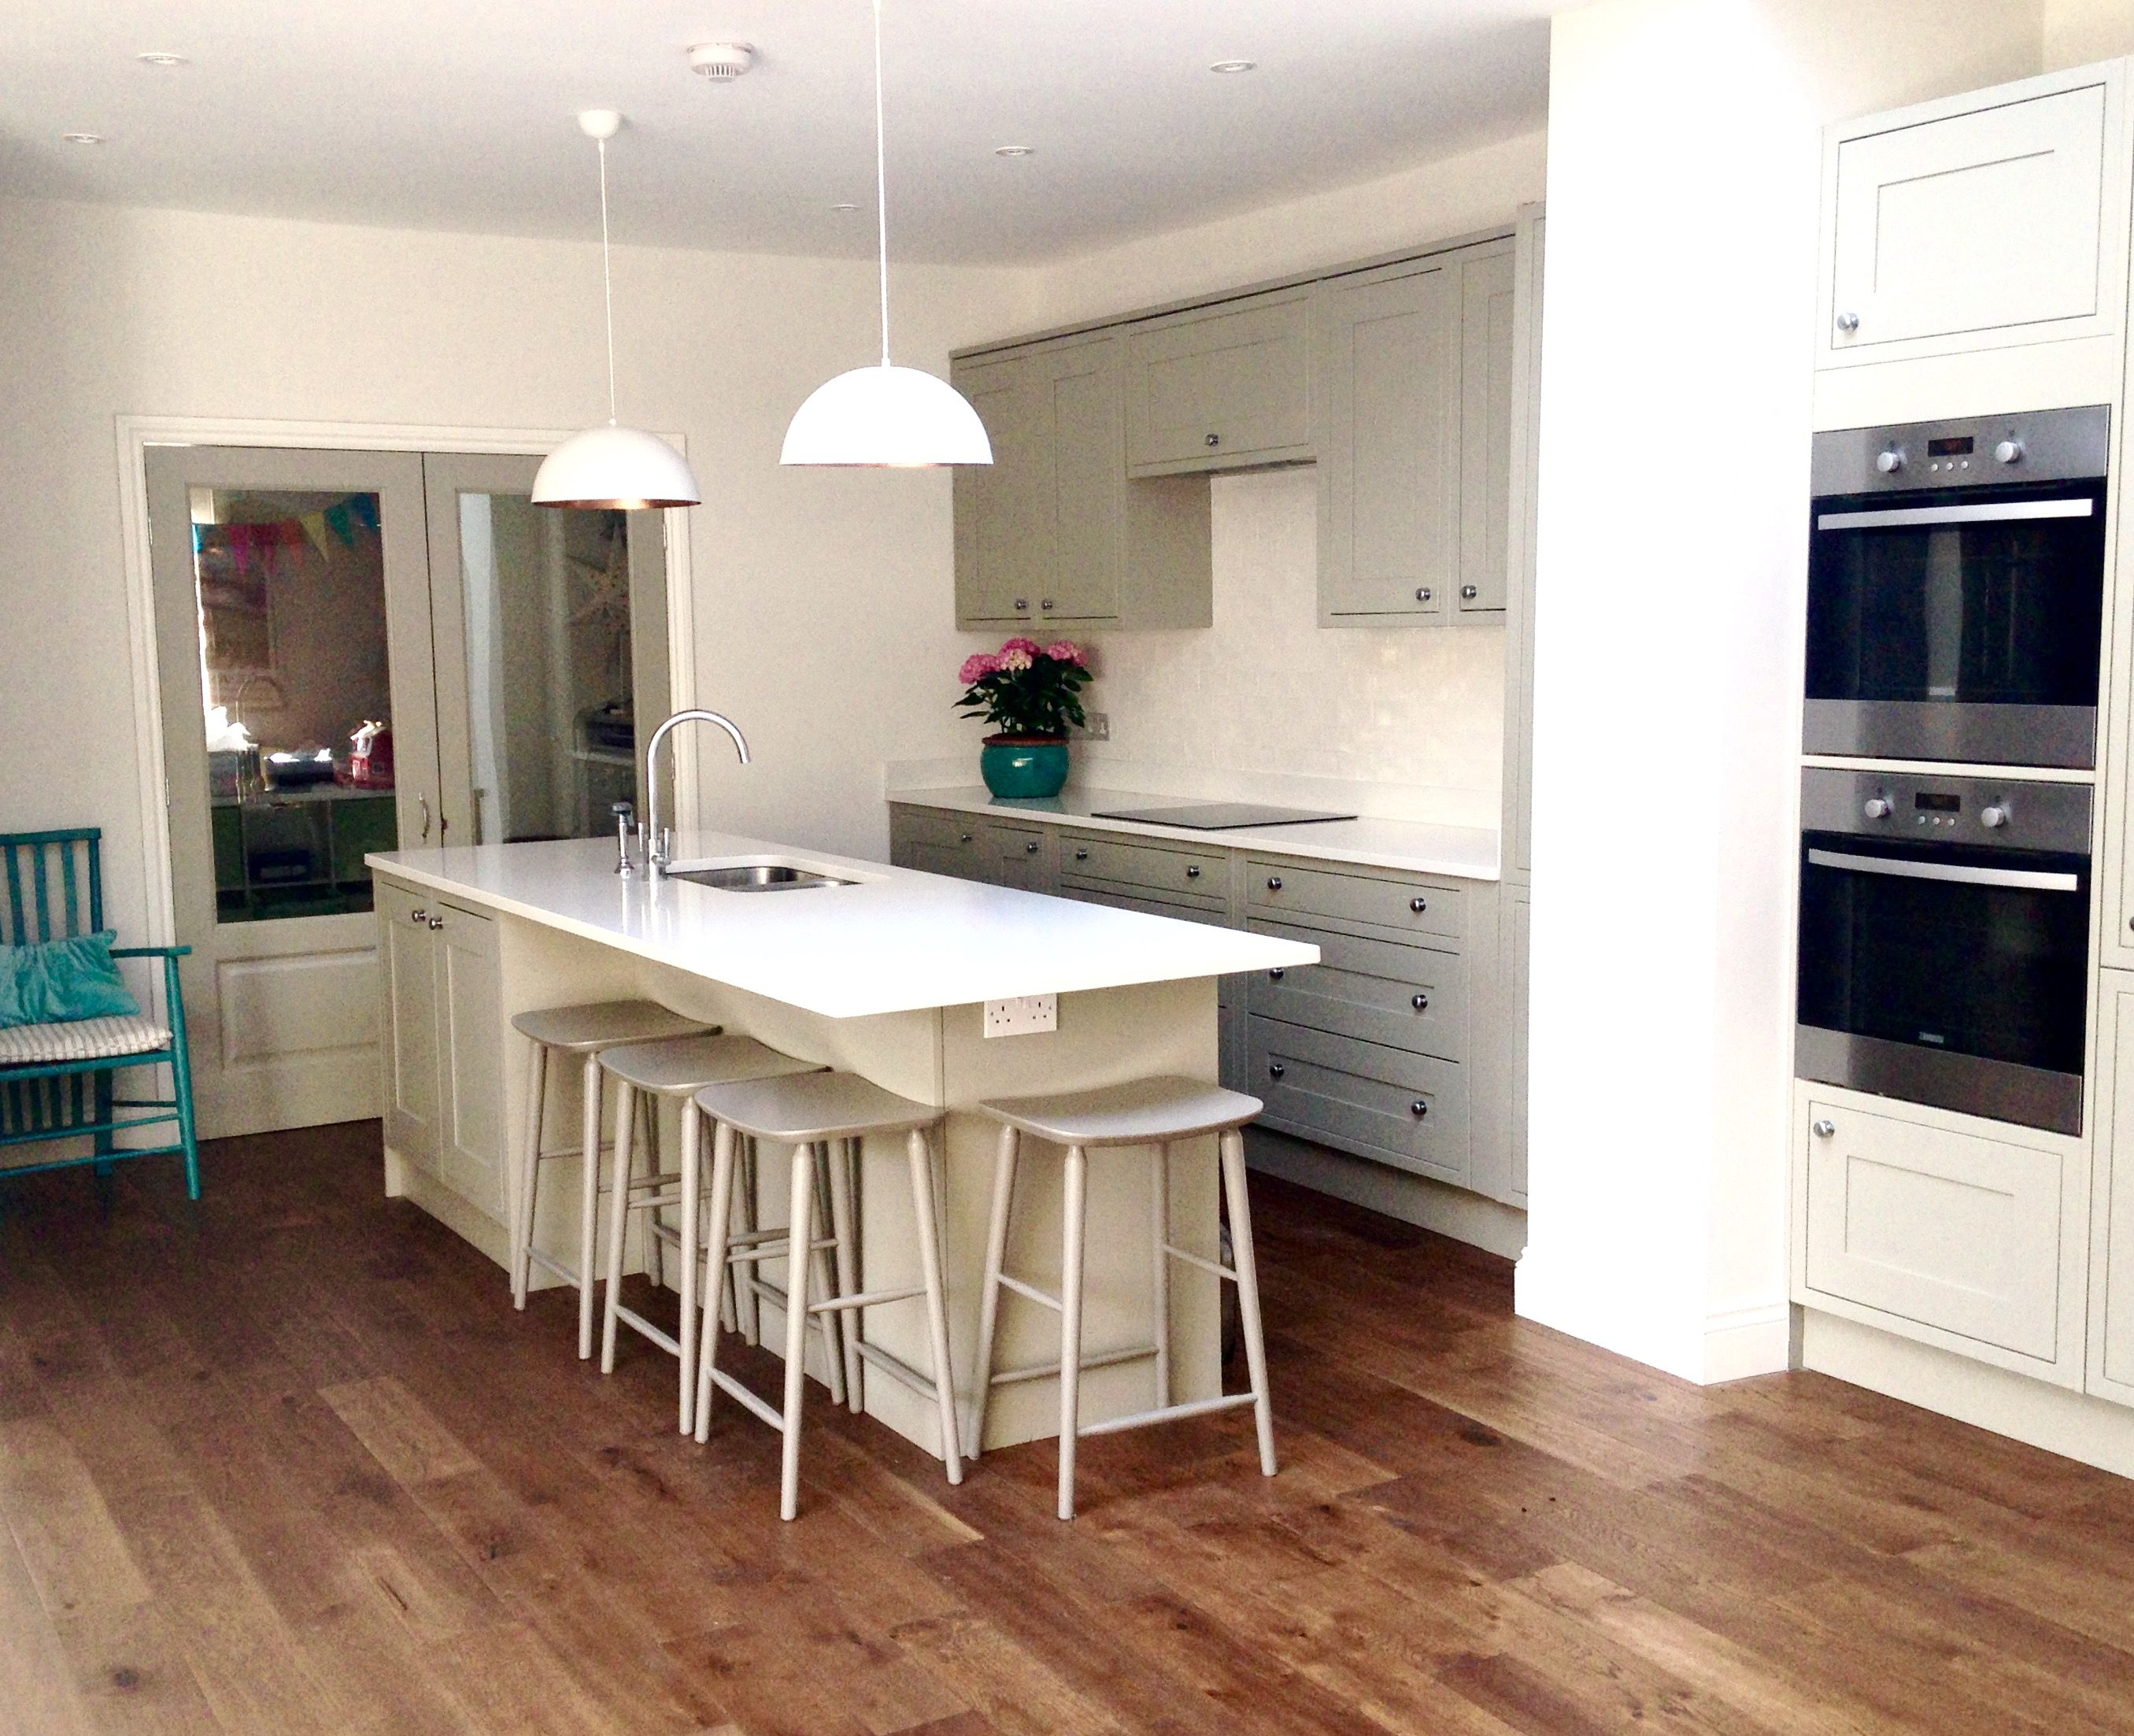 kitchen units are from wickes heritage grey they are a. Black Bedroom Furniture Sets. Home Design Ideas